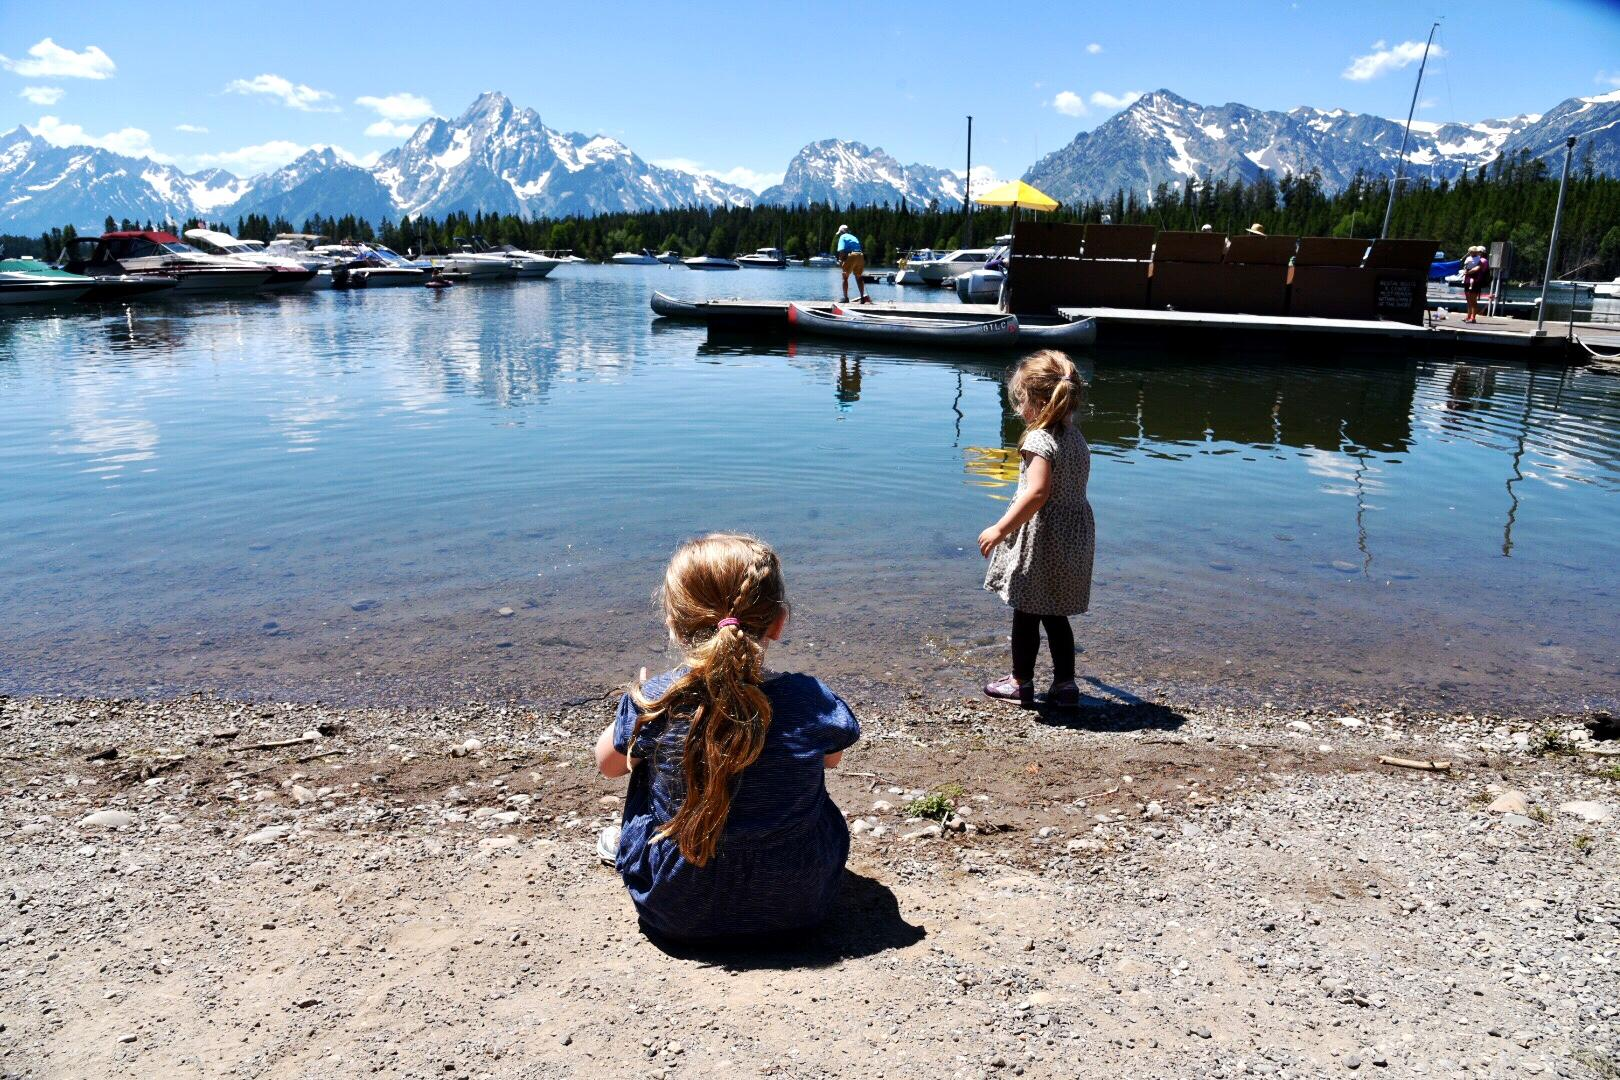 Jackson Lake is home to many boating activities from canoeing to kayaking and even motorized boats. (Image: Rebecca Mongrain/Seattle Refined)